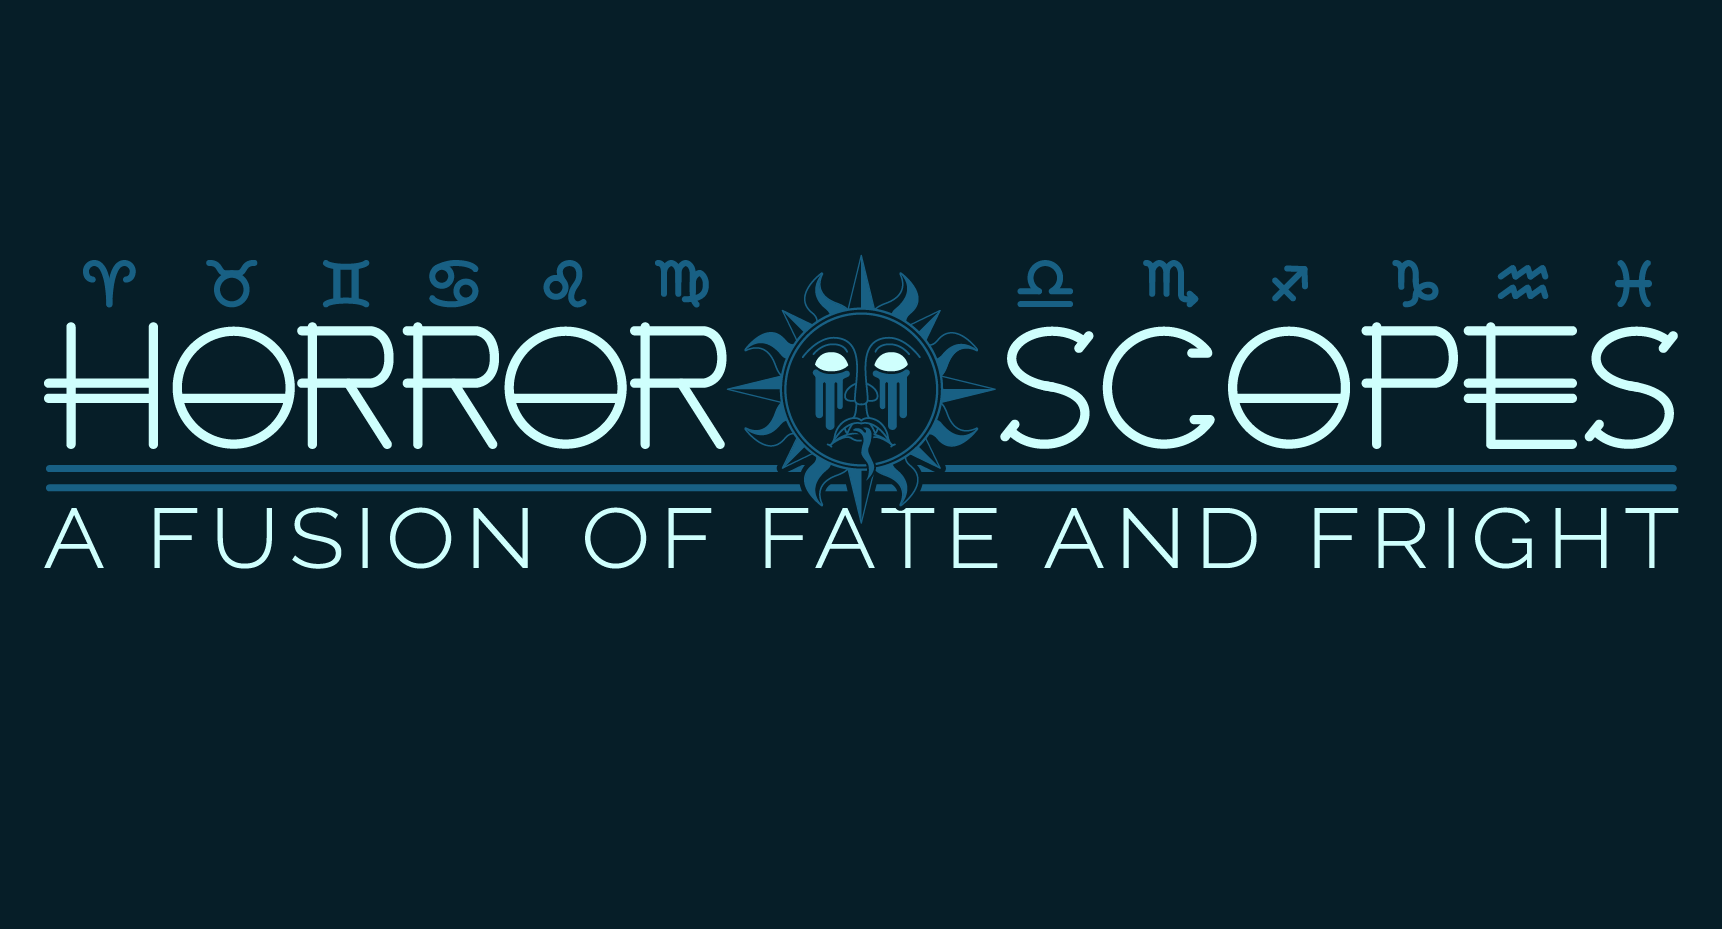 Horror Scopes: A Fusion of Fate and Fright